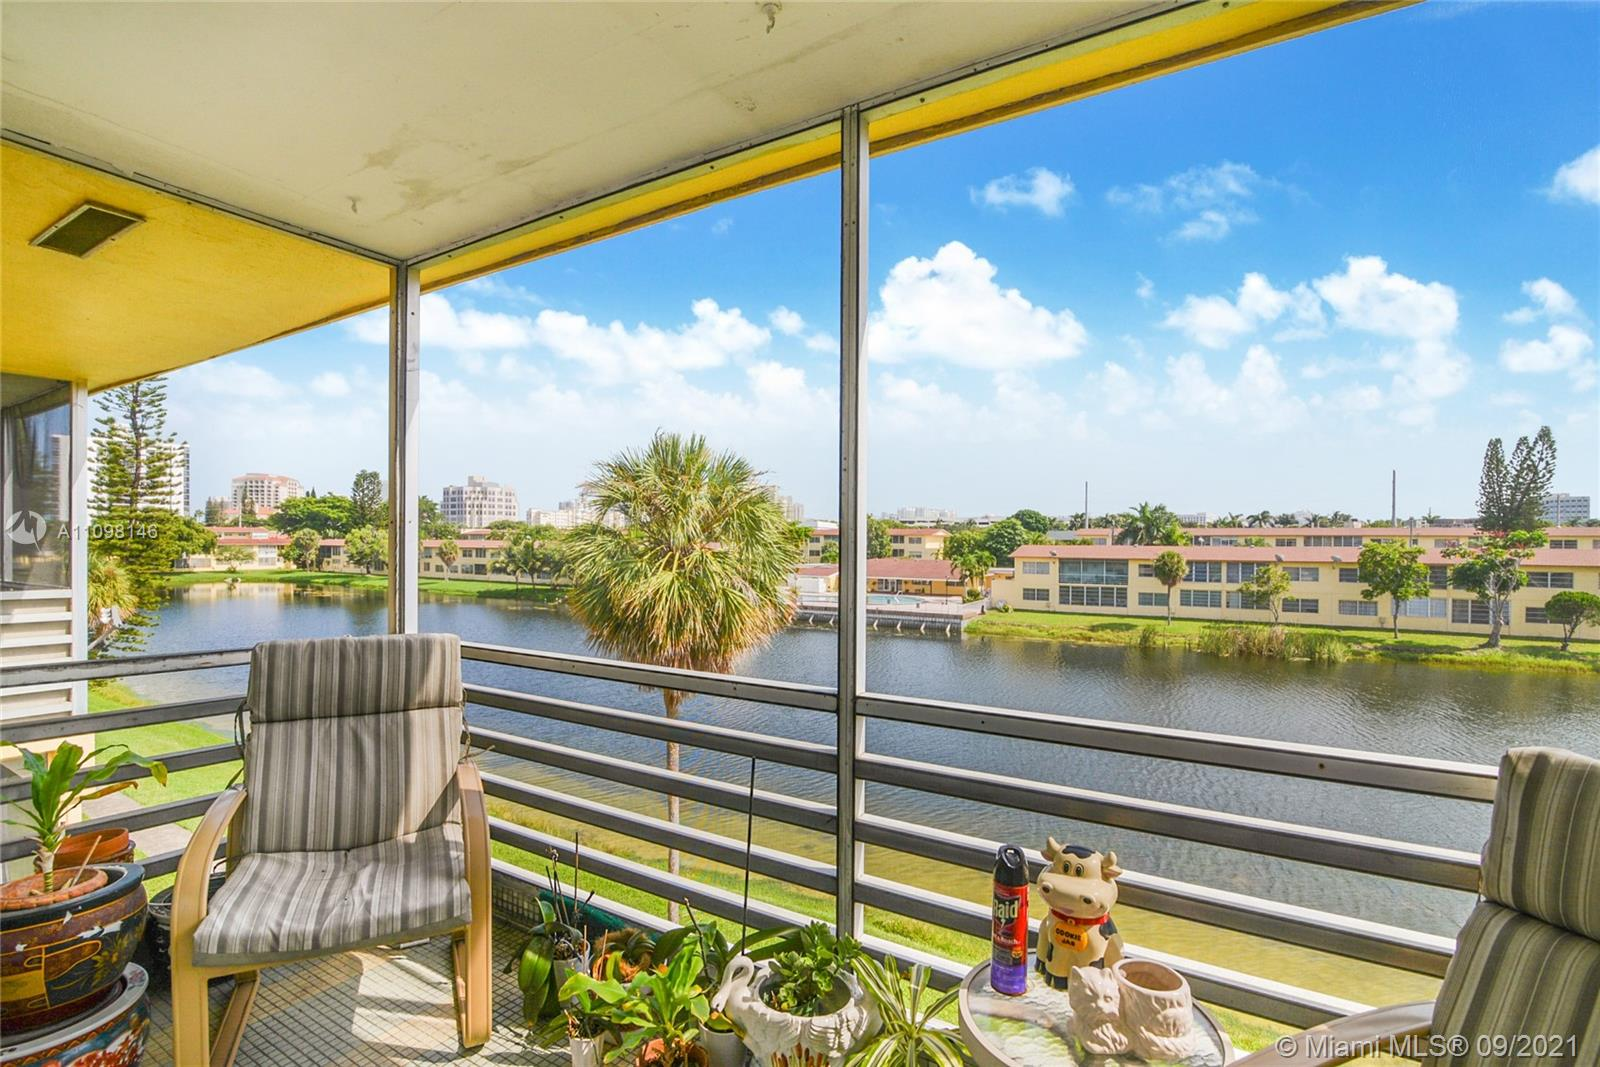 2880 NE 203rd St #26, Aventura, Florida 33180, 1 Bedroom Bedrooms, ,1 BathroomBathrooms,Residential,For Sale,203rd St,A11098146